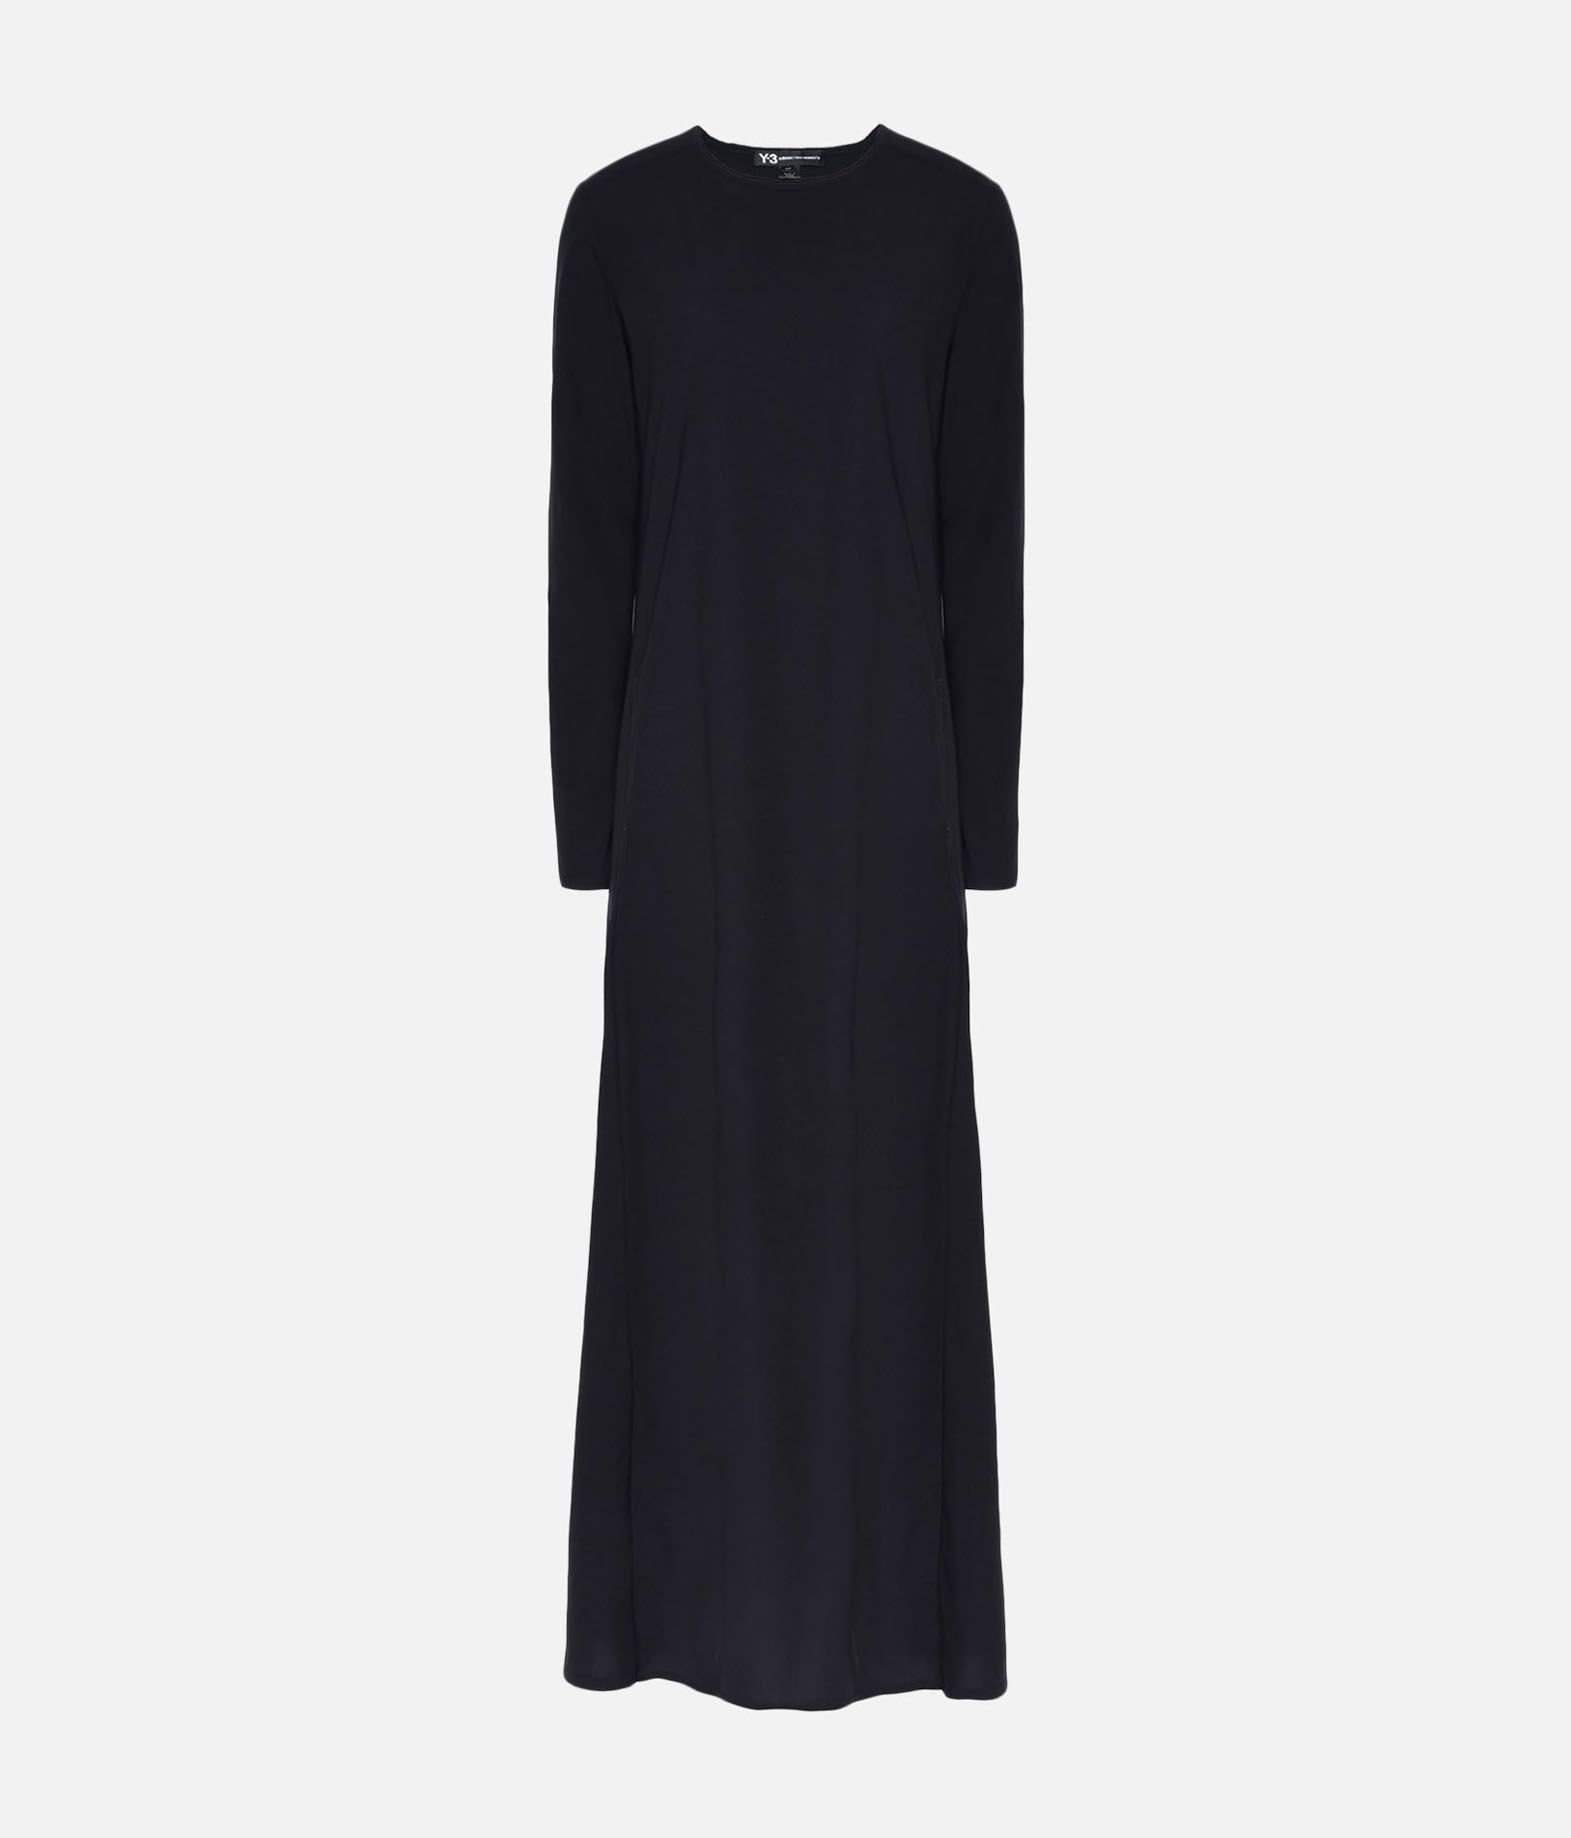 Y-3 Y-3 Stacked Logo Dress Long dress Woman f